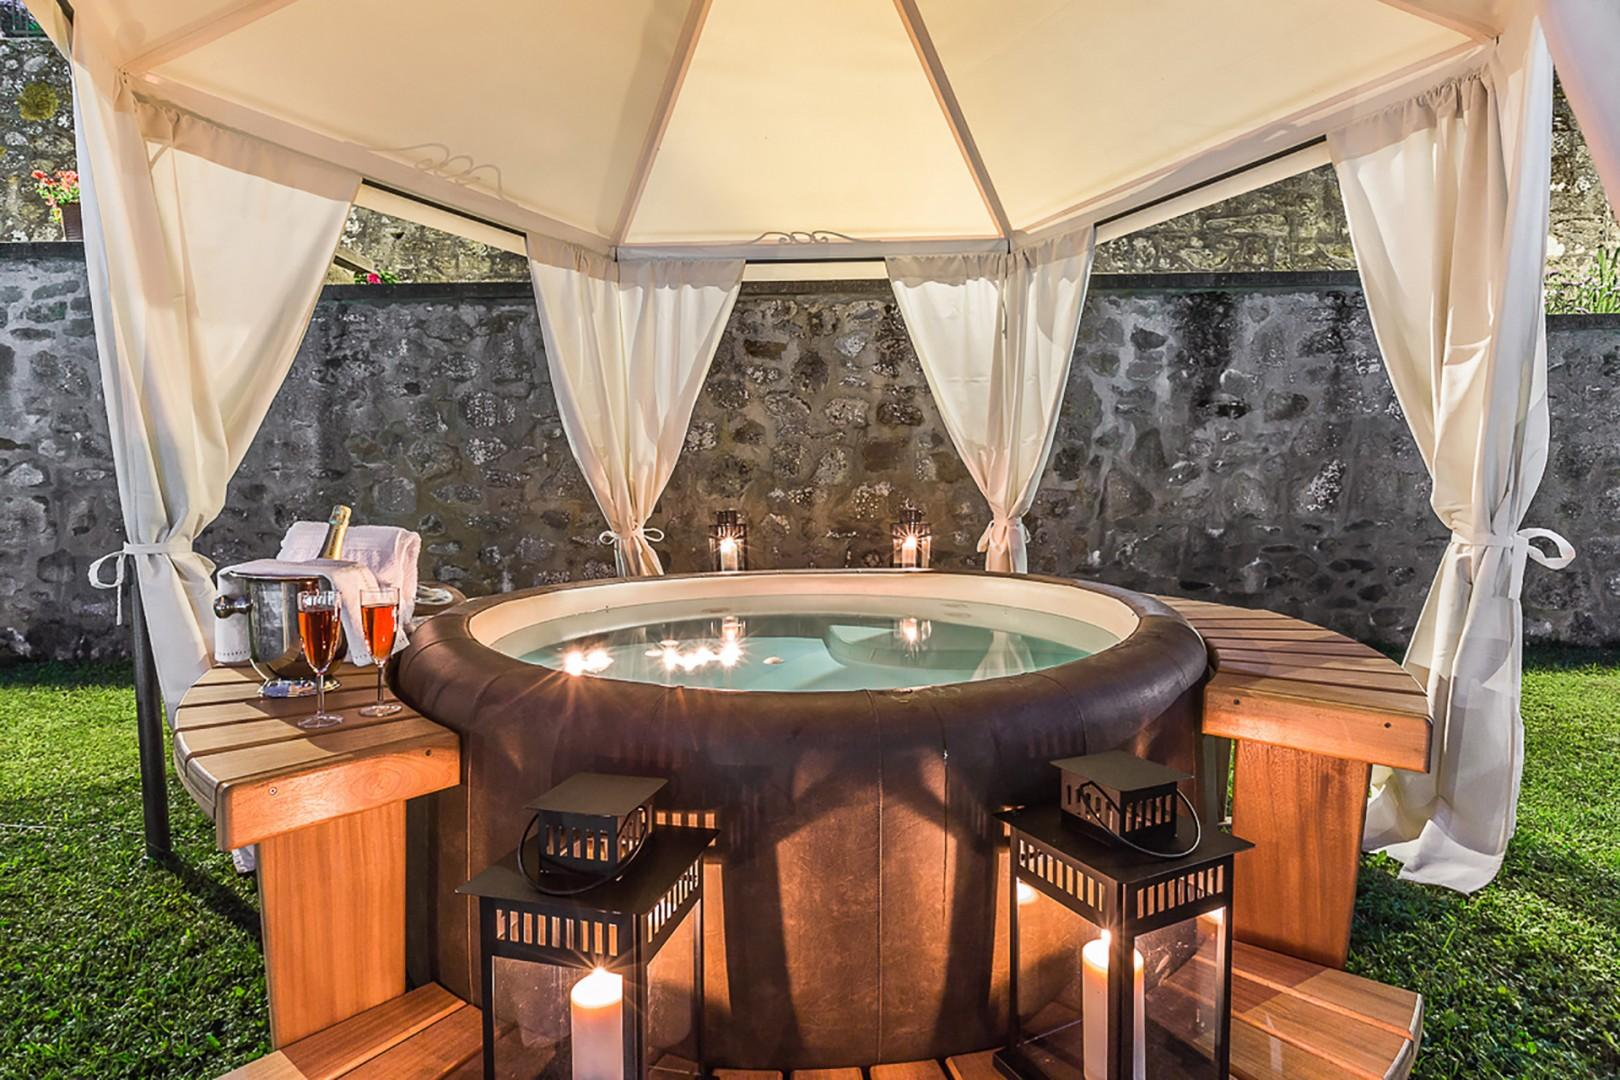 Relax and revitalize in the outdoor Jacuzzi.